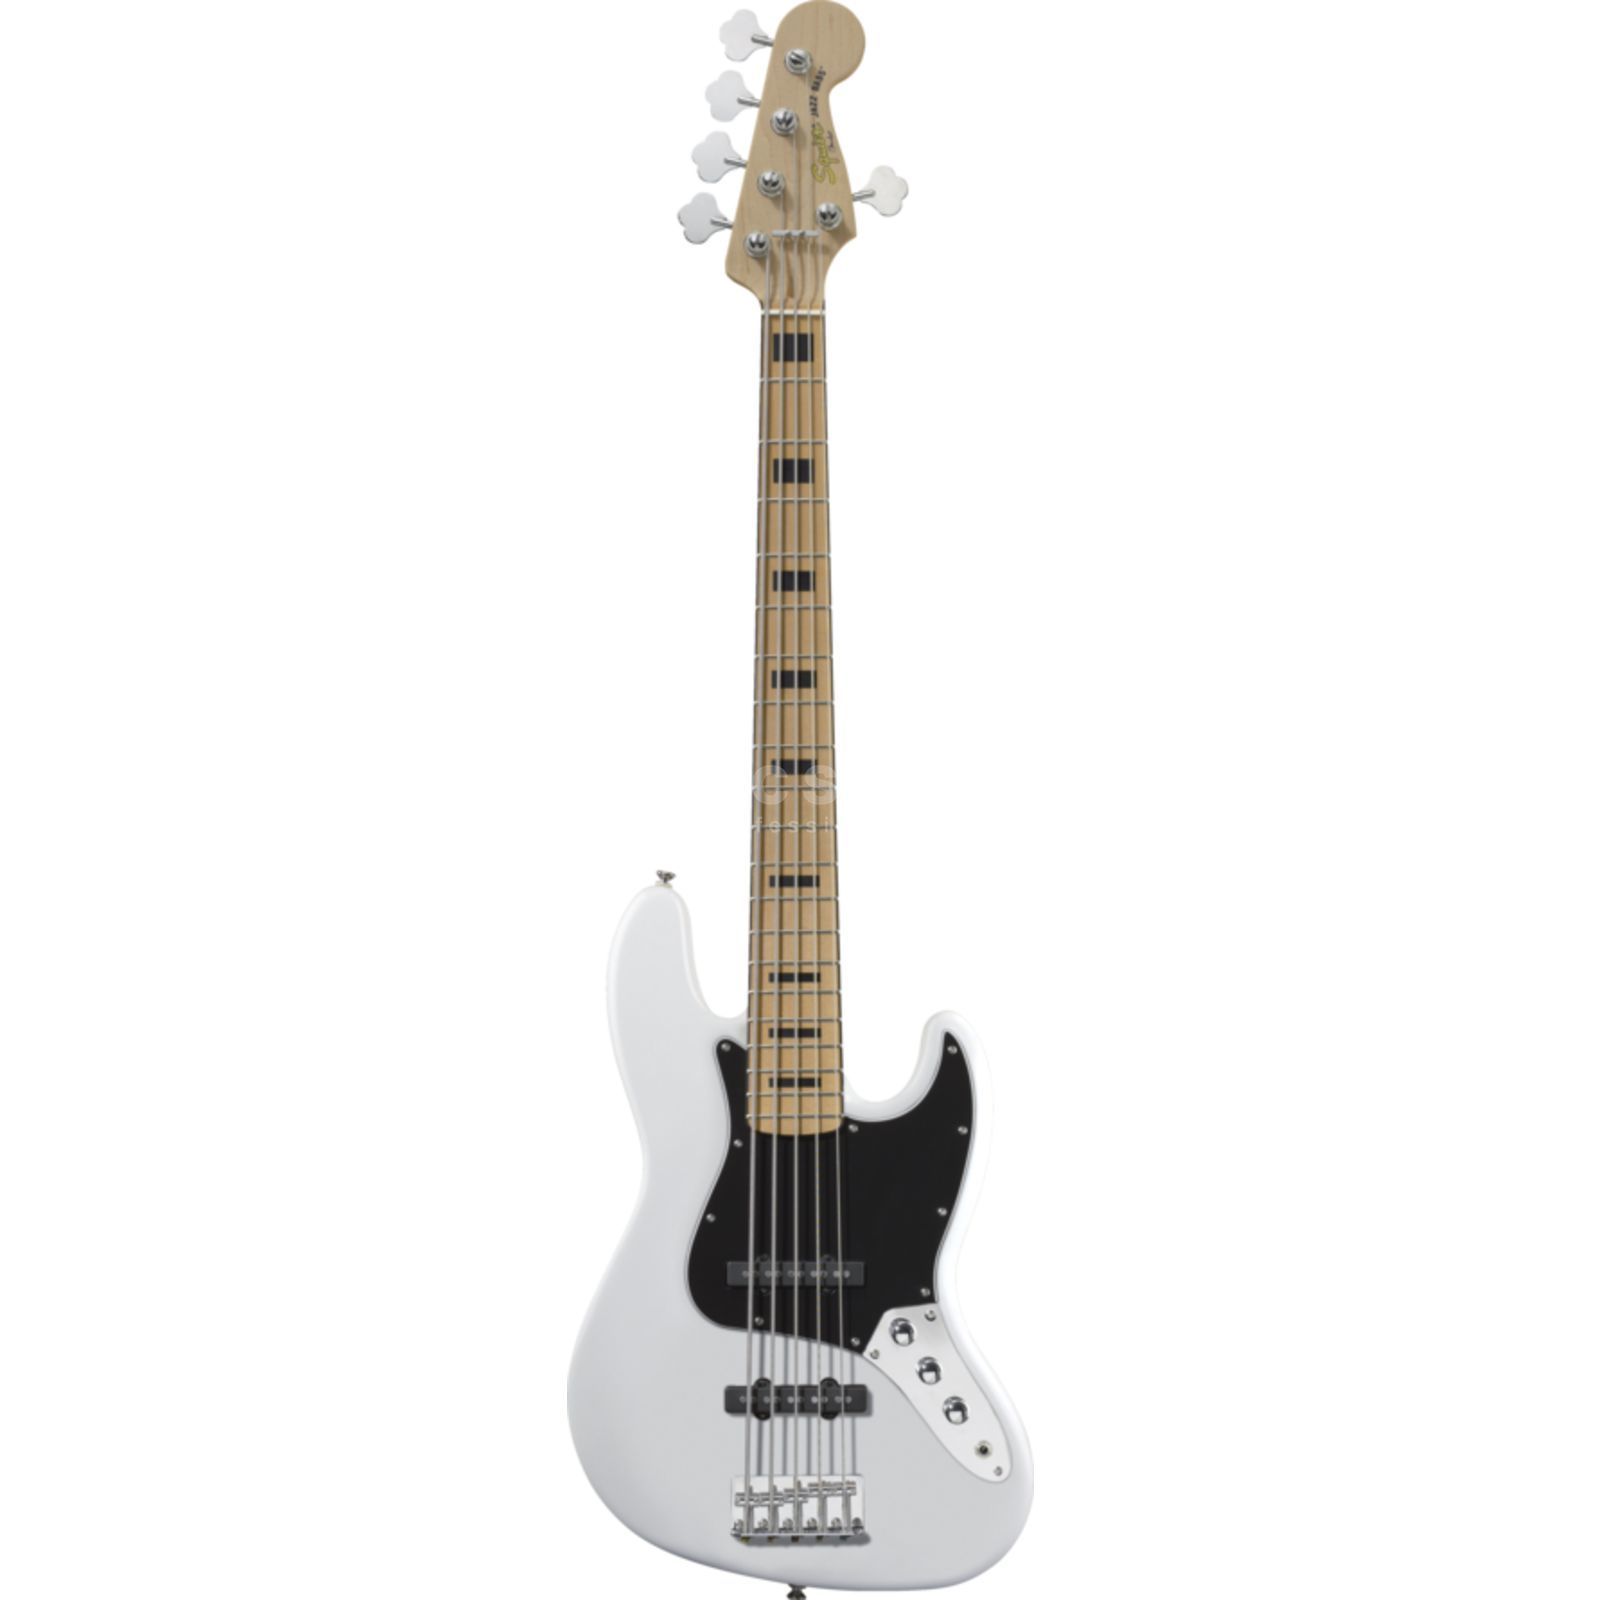 Fender Squier Squier VM J-Bass V MN OW Olympic White, 5-String Изображение товара